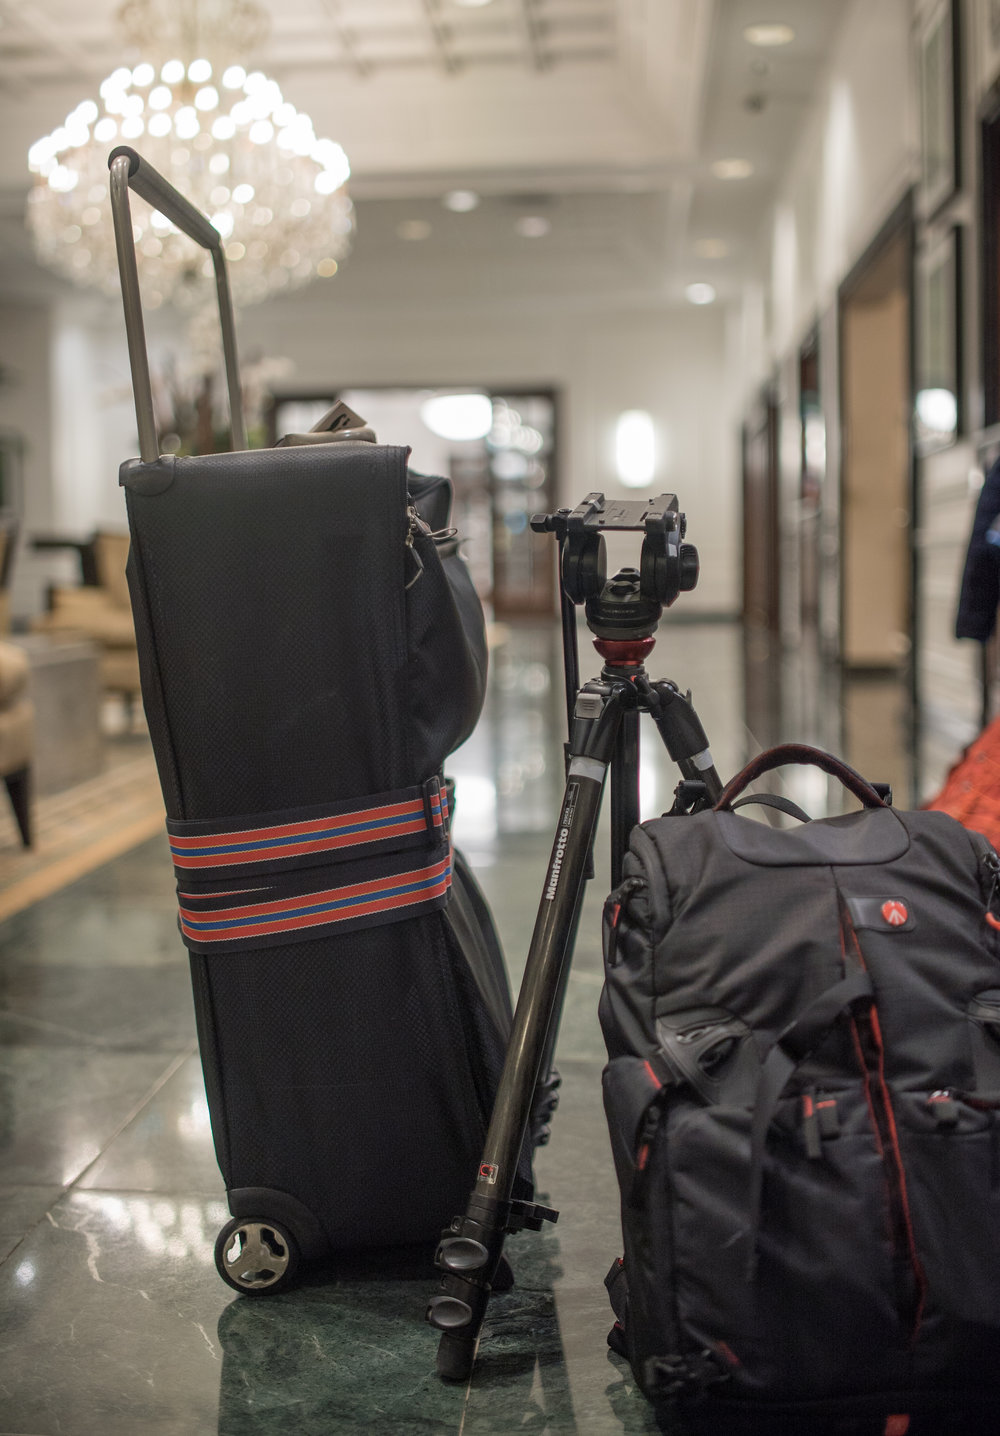 Manfrotto Pro Light 35 Backpack and 755 CX 3 tripod.